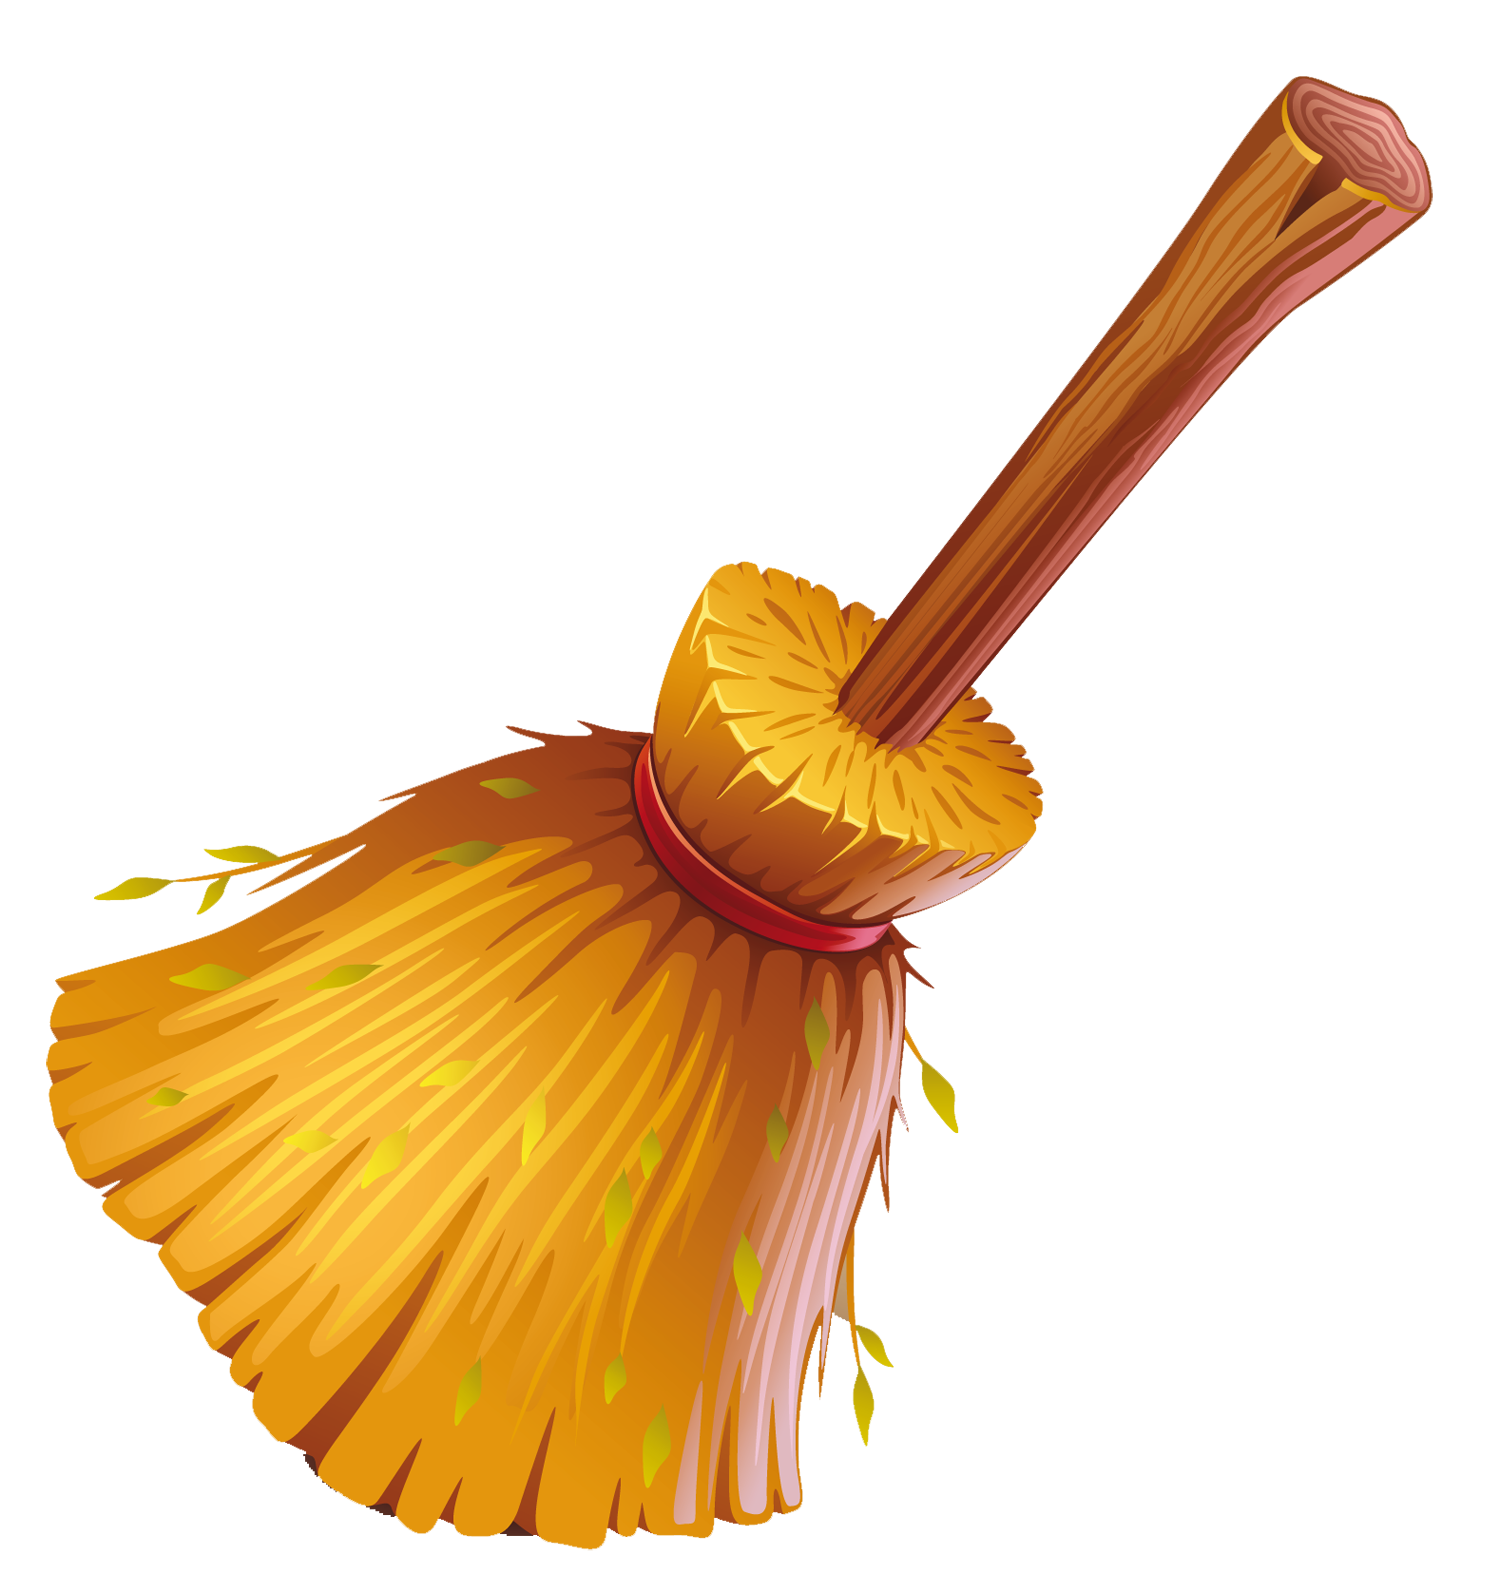 1500x1573 Witch Broom Png Clipartu200b Gallery Yopriceville